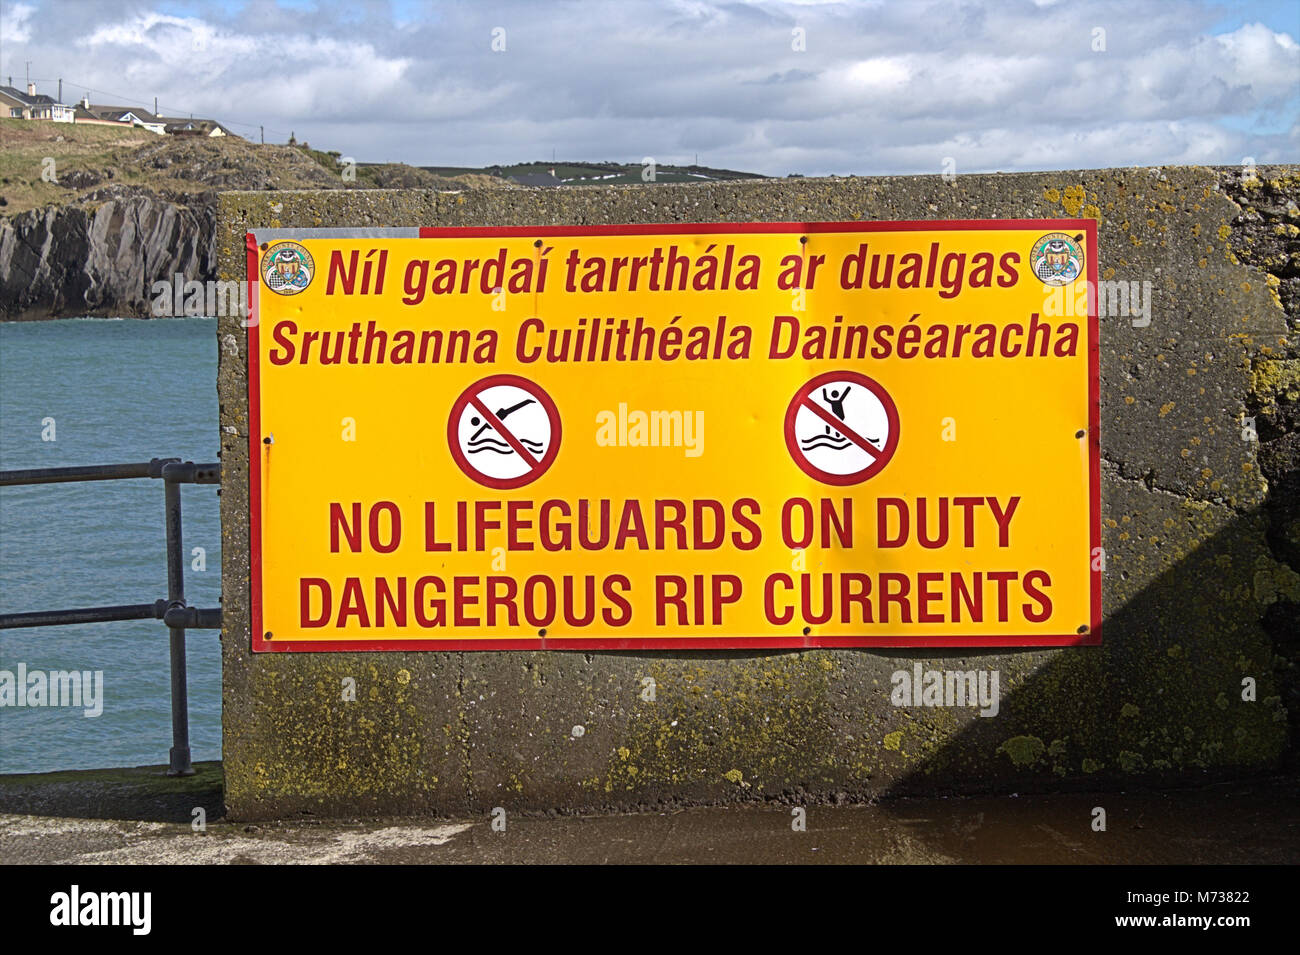 danger-rip-tides-sign-in-english-and-gaelic-the-sign-is-at-the-end-M73822.jpg